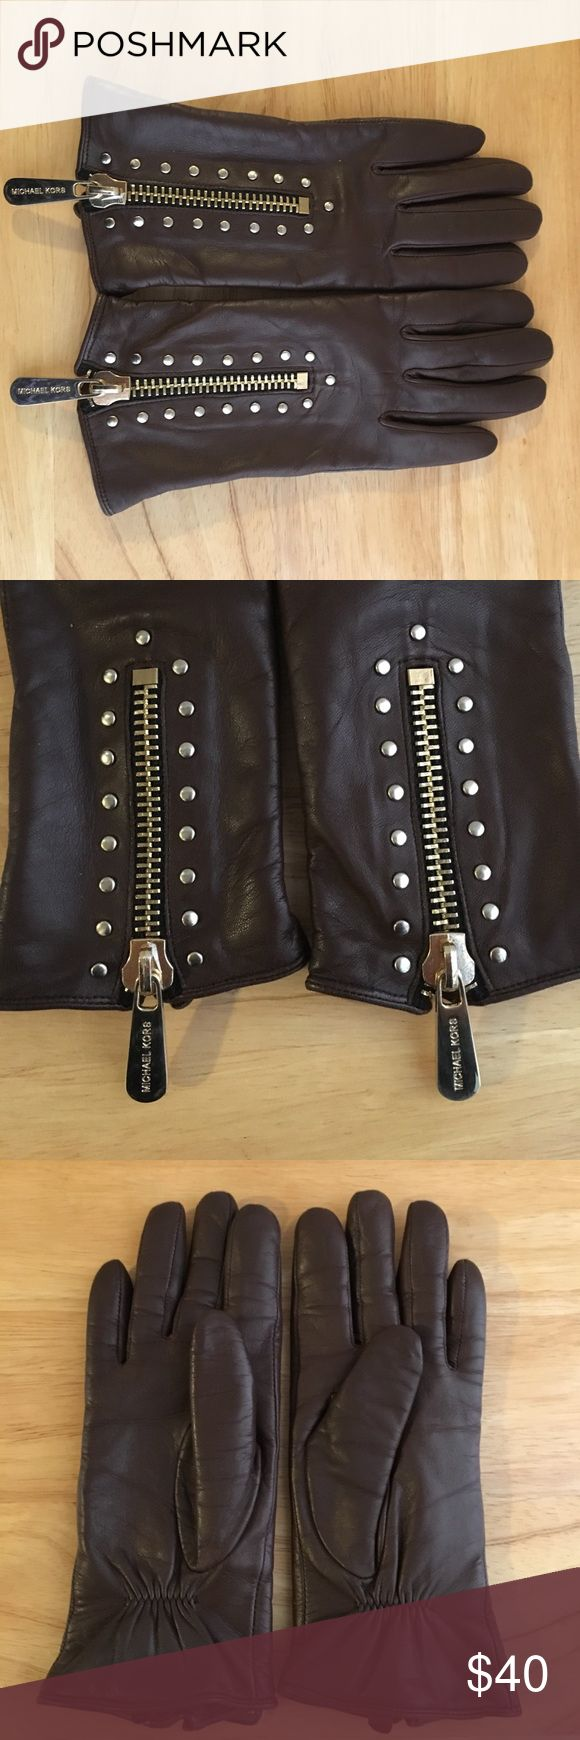 MICHAEL KORS GOLD STUDDED GLOVES MK Brown leather gloves. Gold tone zipper and studs. Very soft. EUC 🌸 MICHAEL Michael Kors Accessories Gloves & Mittens